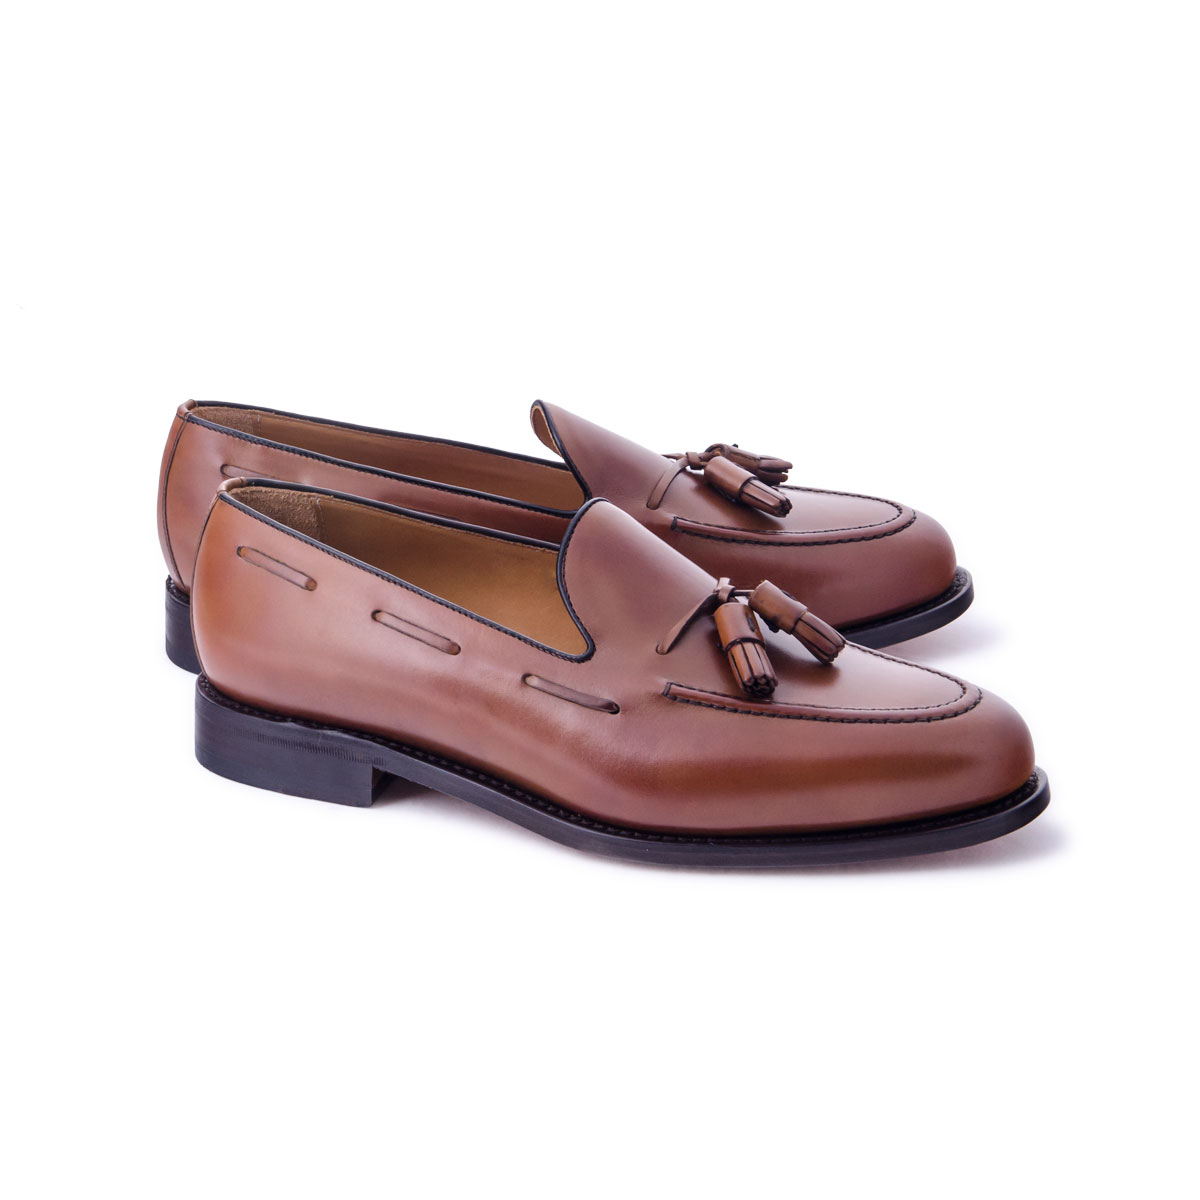 Zapato Vestir Good Year Welt Mocasin Monk Pompones